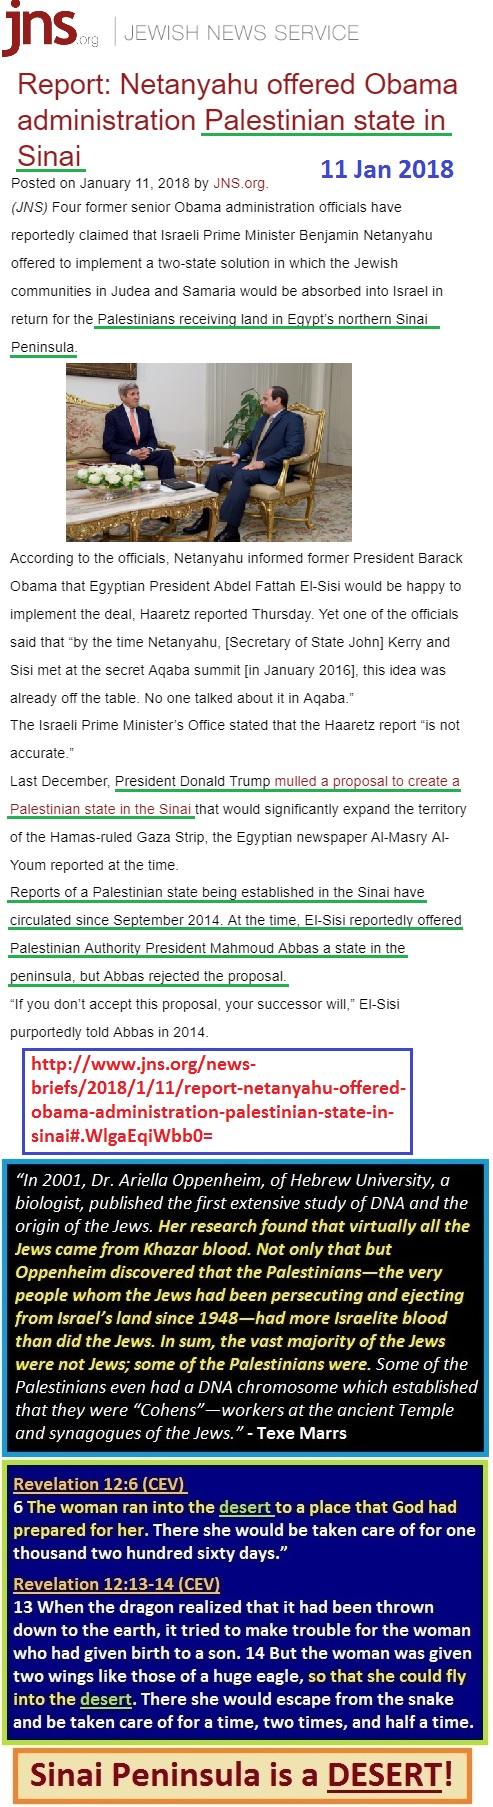 https://www.jns.org/report-netanyahu-offered-obama-administration-palestinian-state-in-sinai/